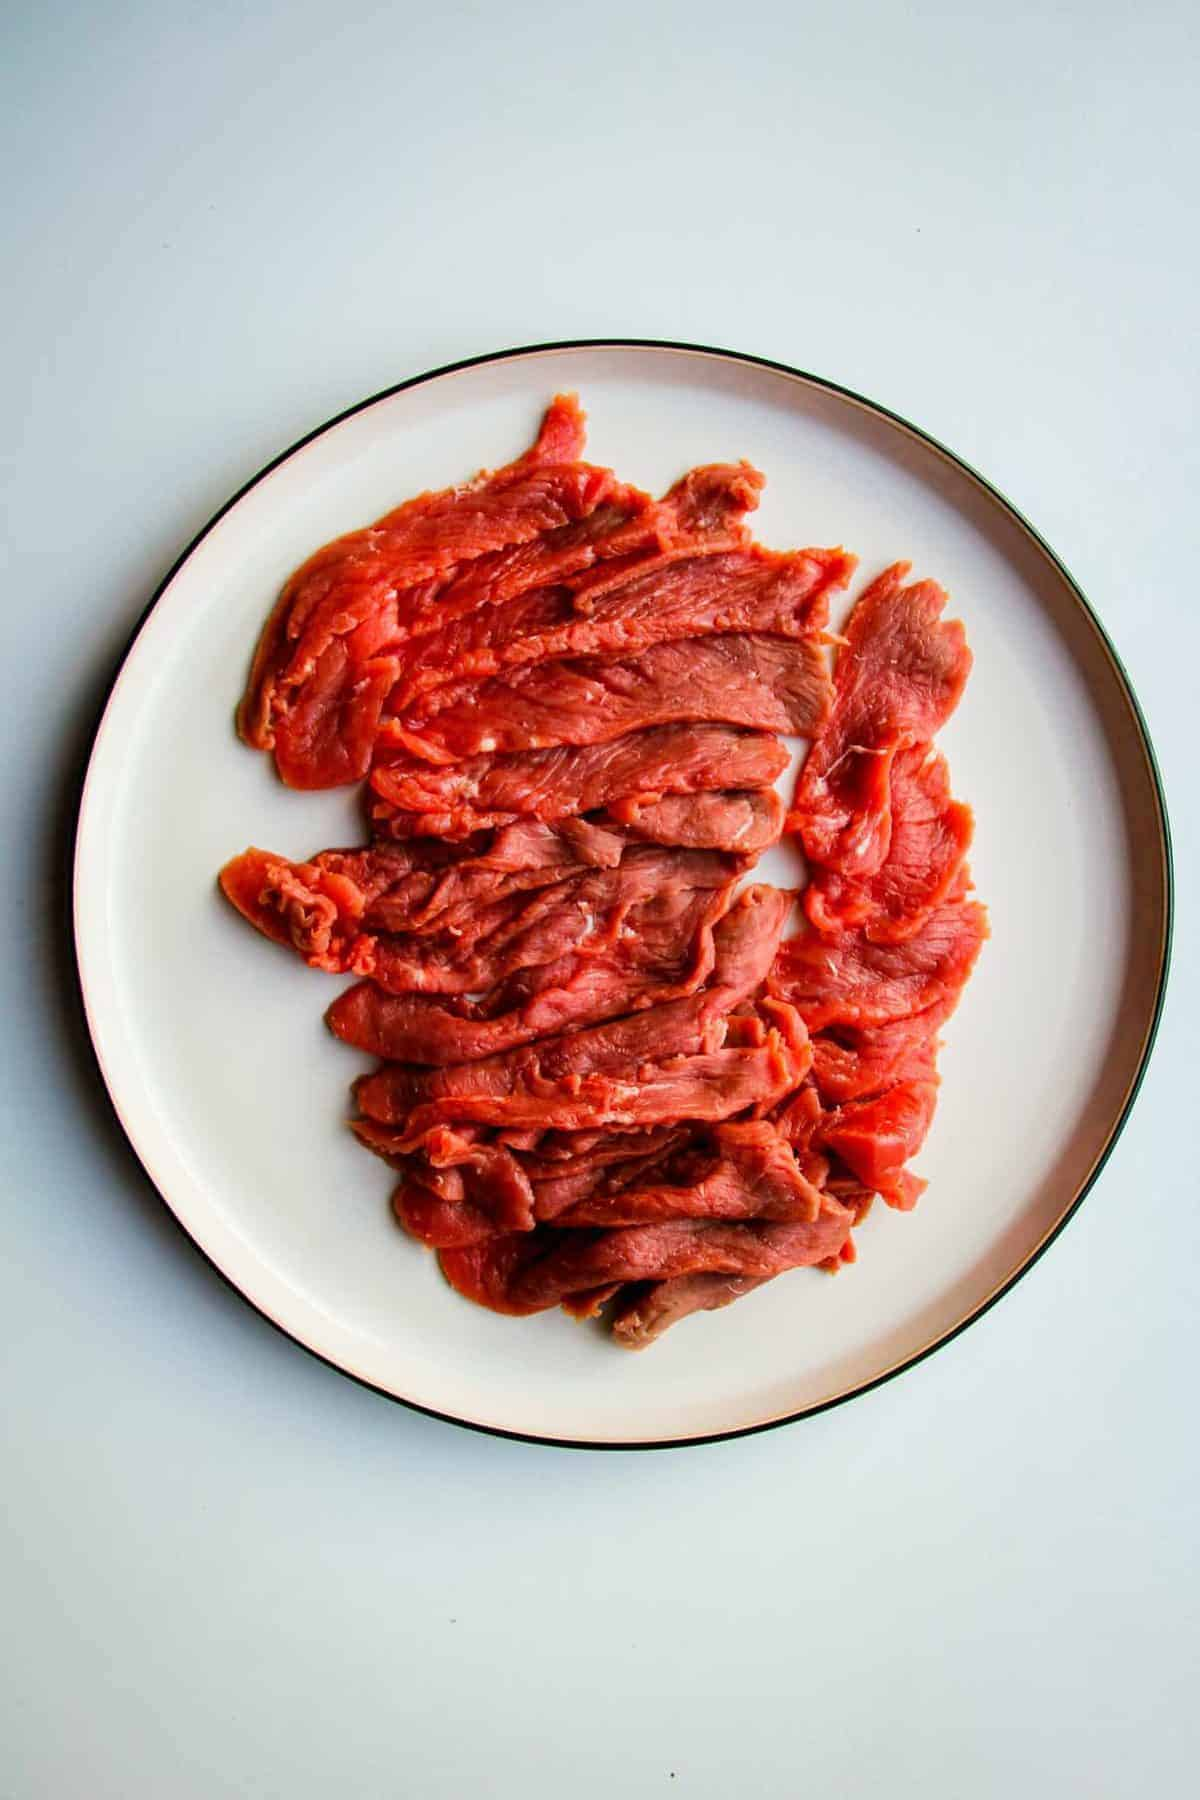 Thinly sliced raw beef on a plate.